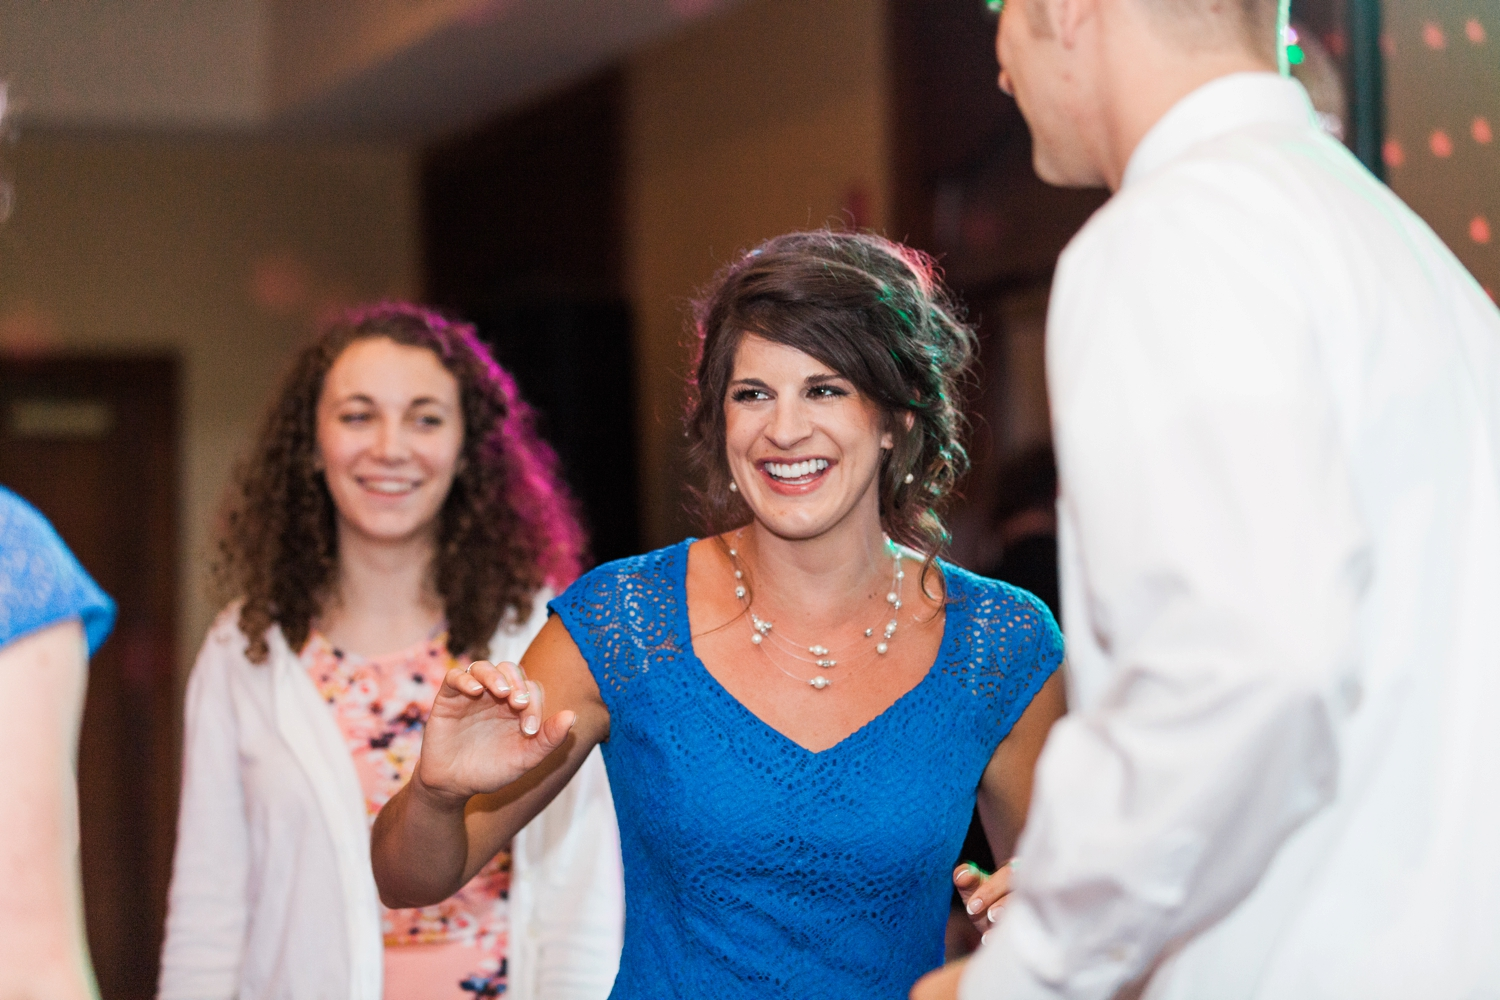 NCR_Country_Club_Kettering_Ohio_Wedding_Photography_Chloe_Luka_Photography_7221.jpg